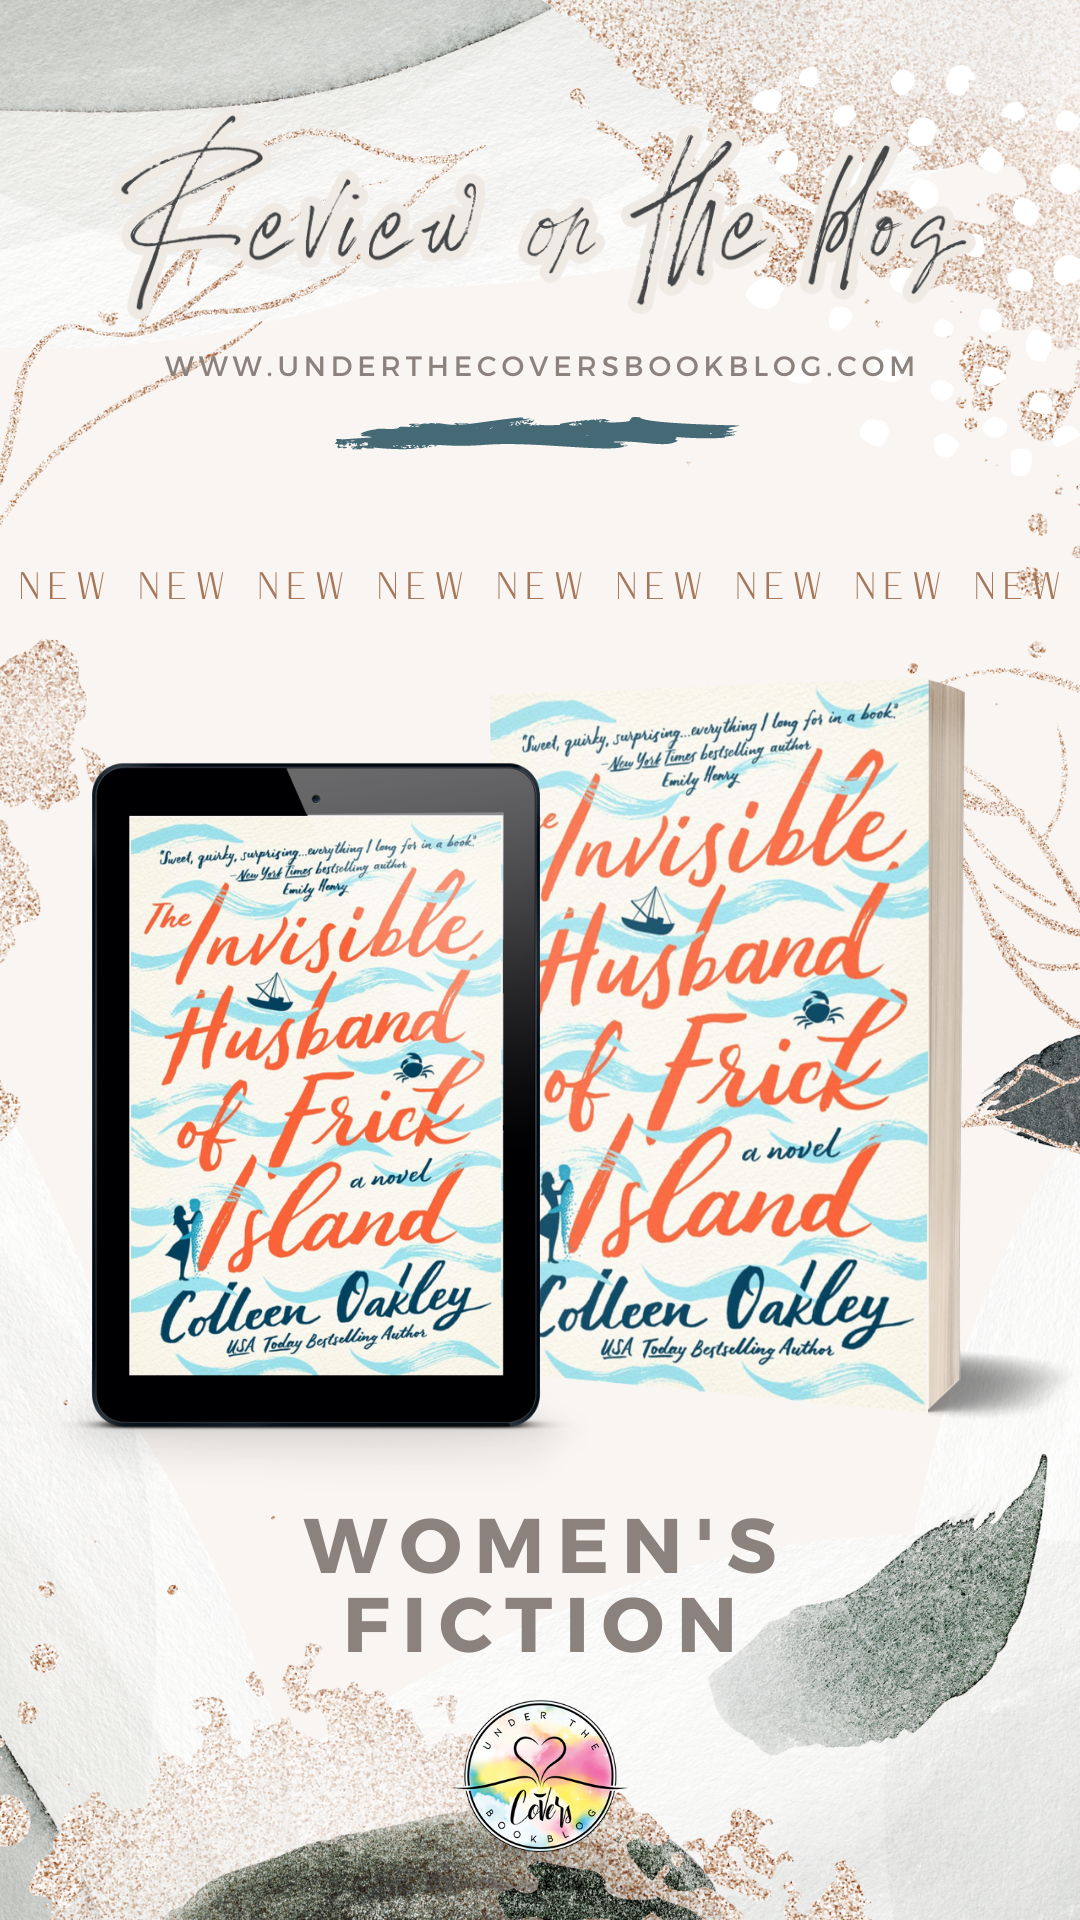 ARC Review: The Invisible Husband of Frick Island by Colleen Oakley